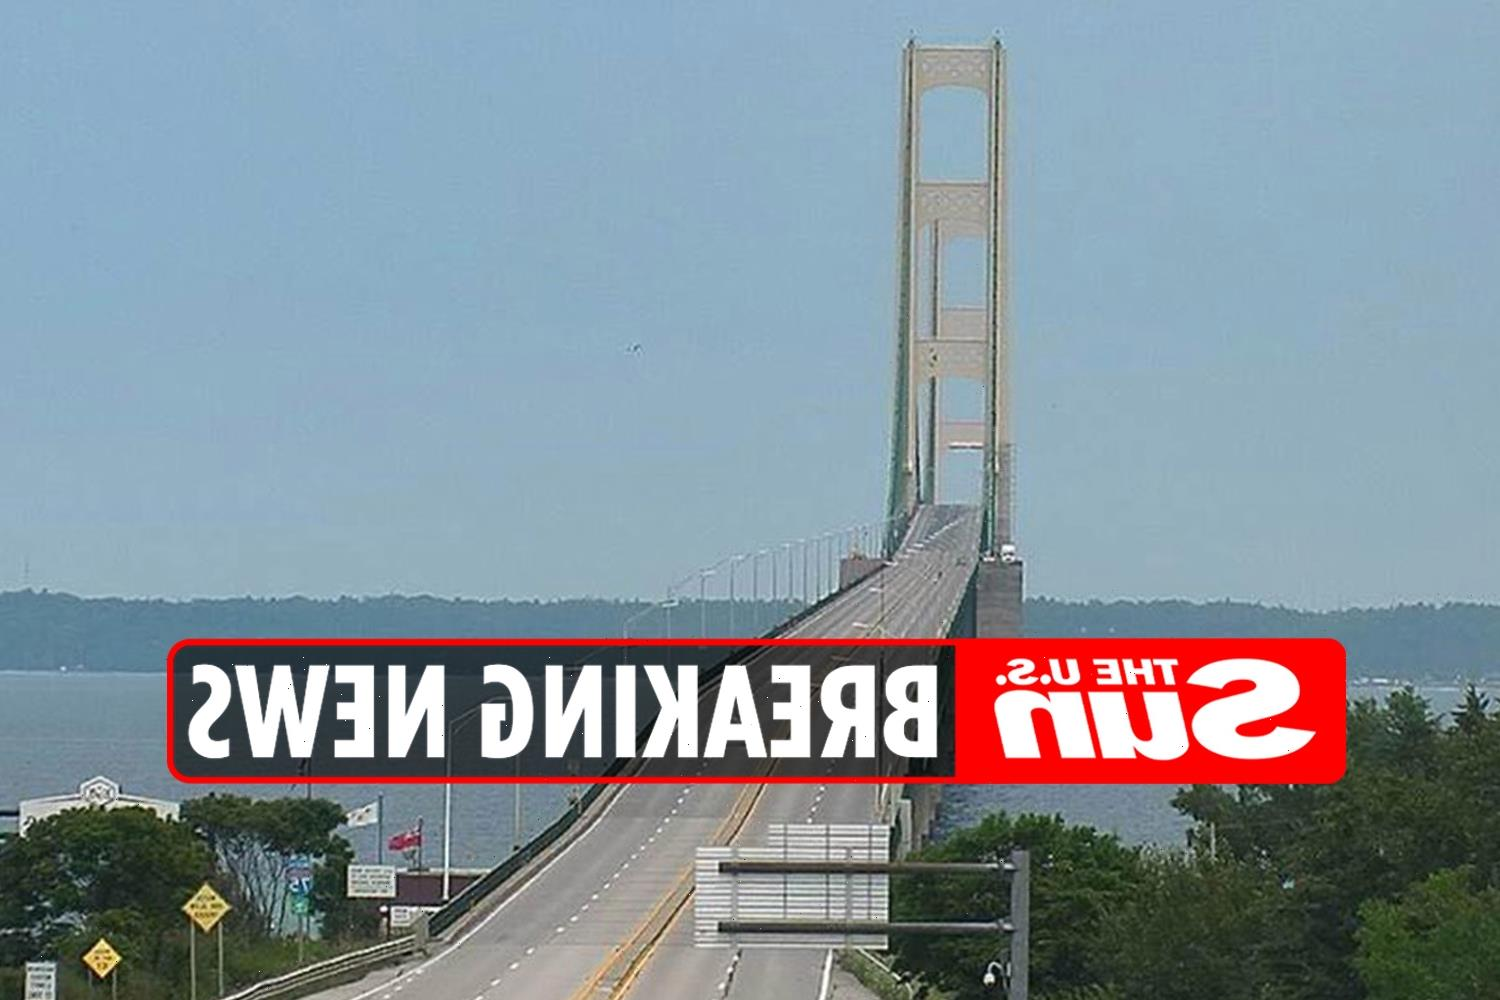 Michigan's Mackinac Bridge is closed after 'emergency incident': Bomb sniffing dogs seen combing area